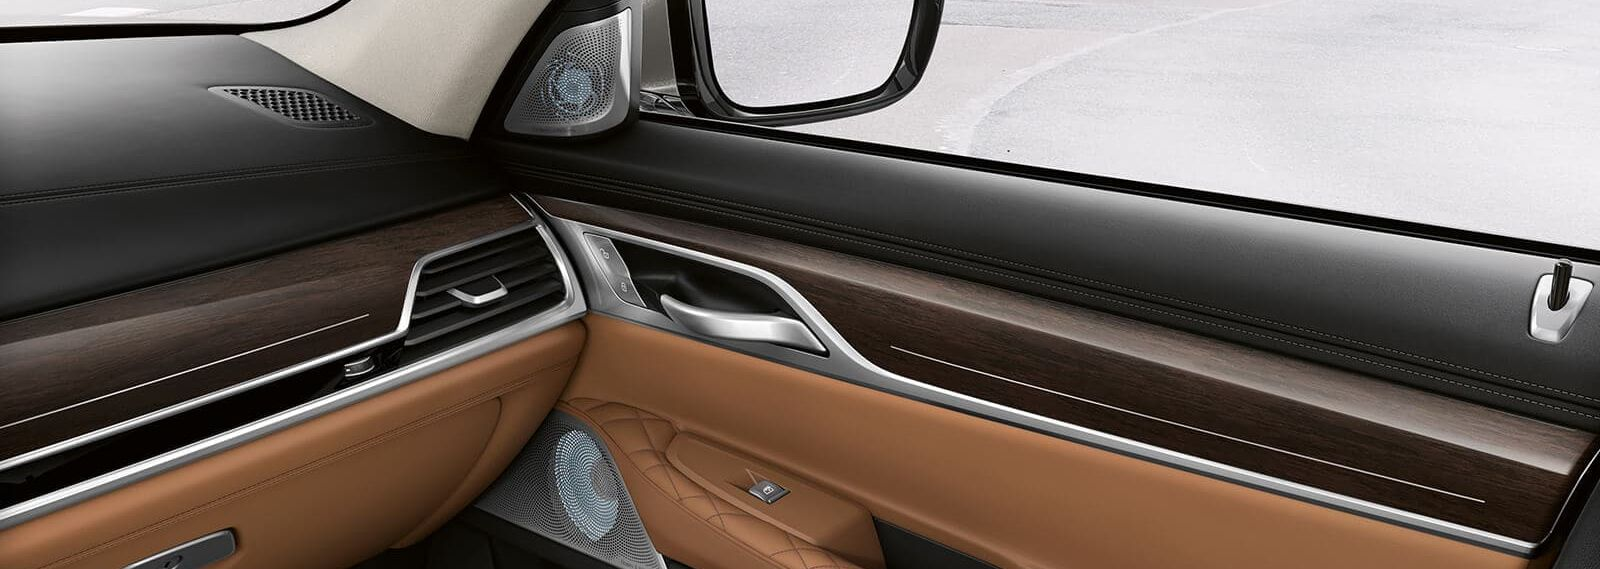 Refined Cabin of the 2020 BMW 7 Series